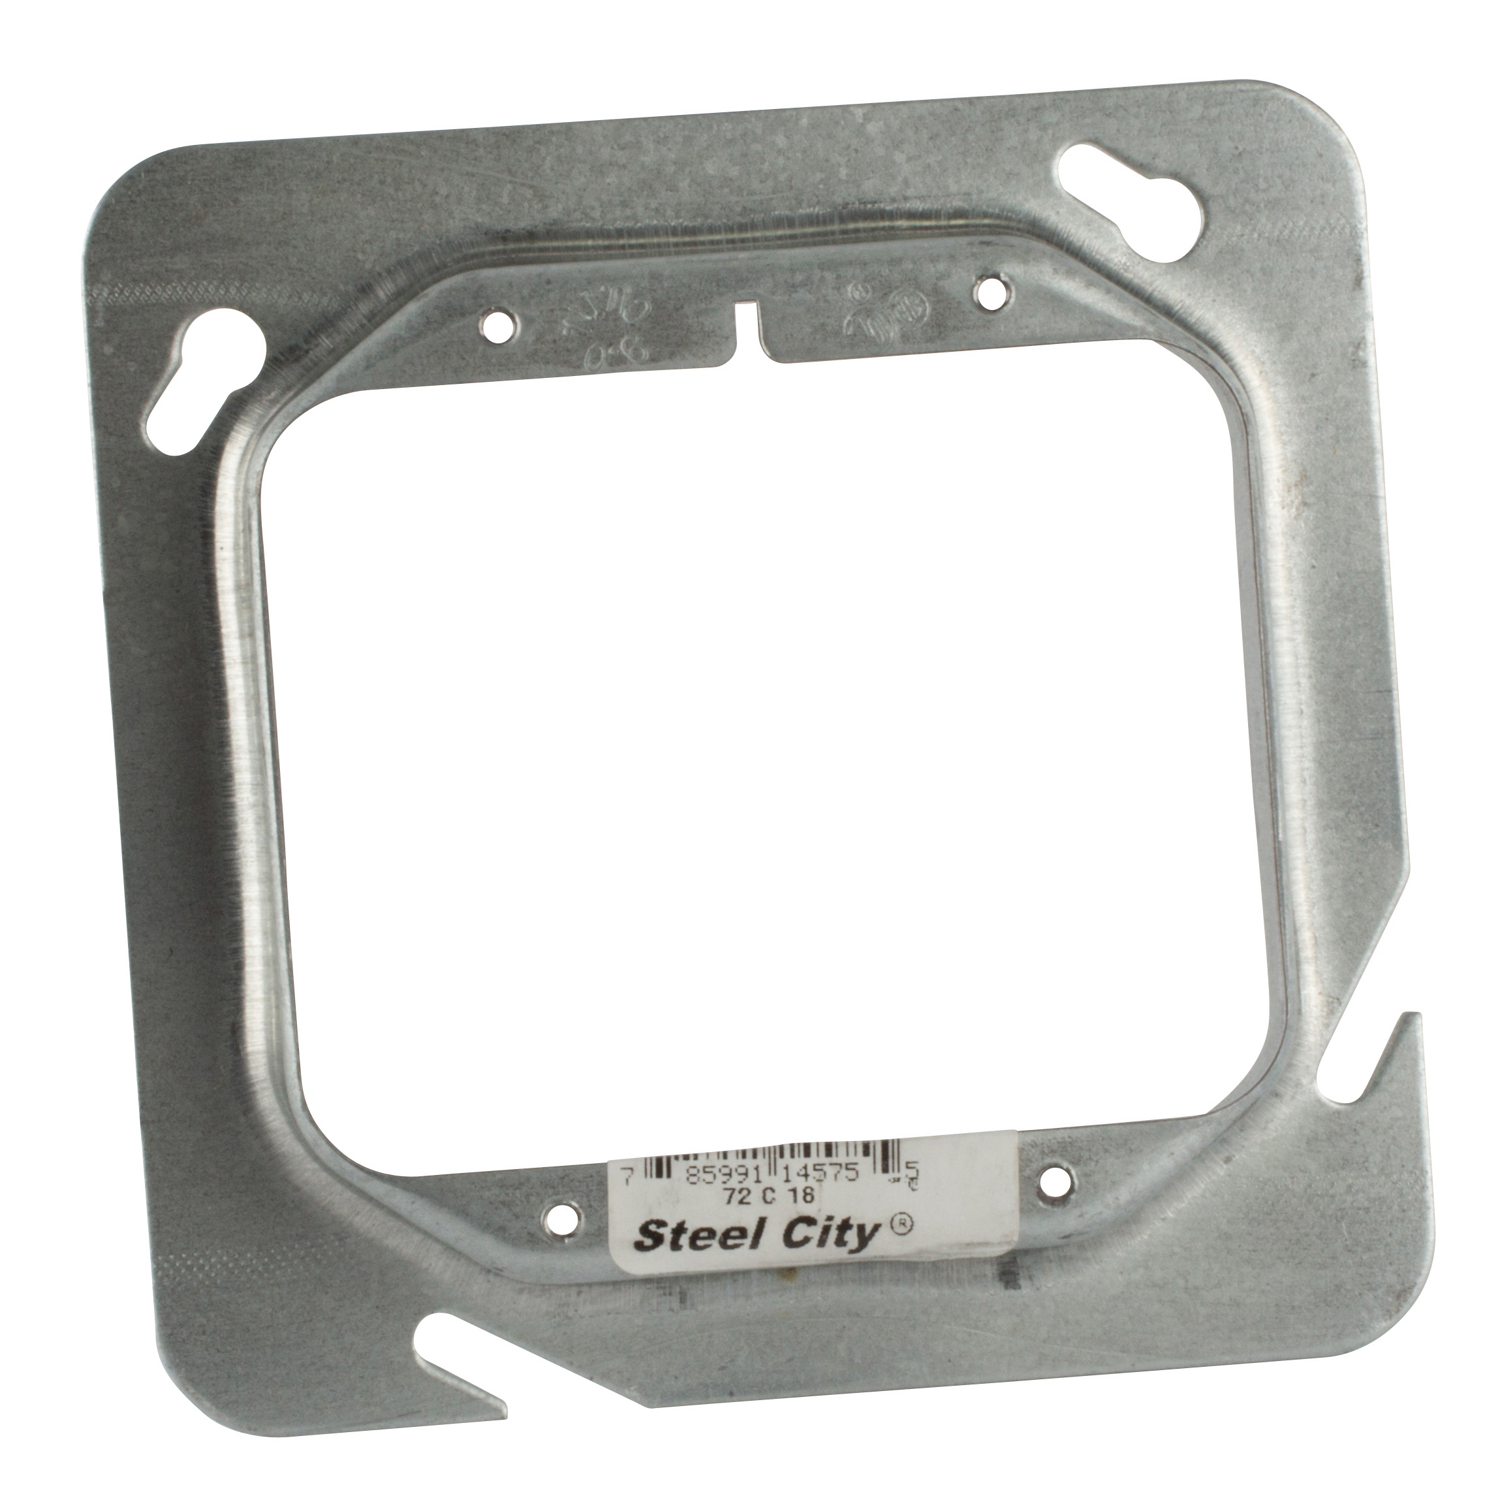 "Steel-City 72C18 4-11/16"" Steel Square Box Device Cover, 3/4"" Raised, 9 cu.in."